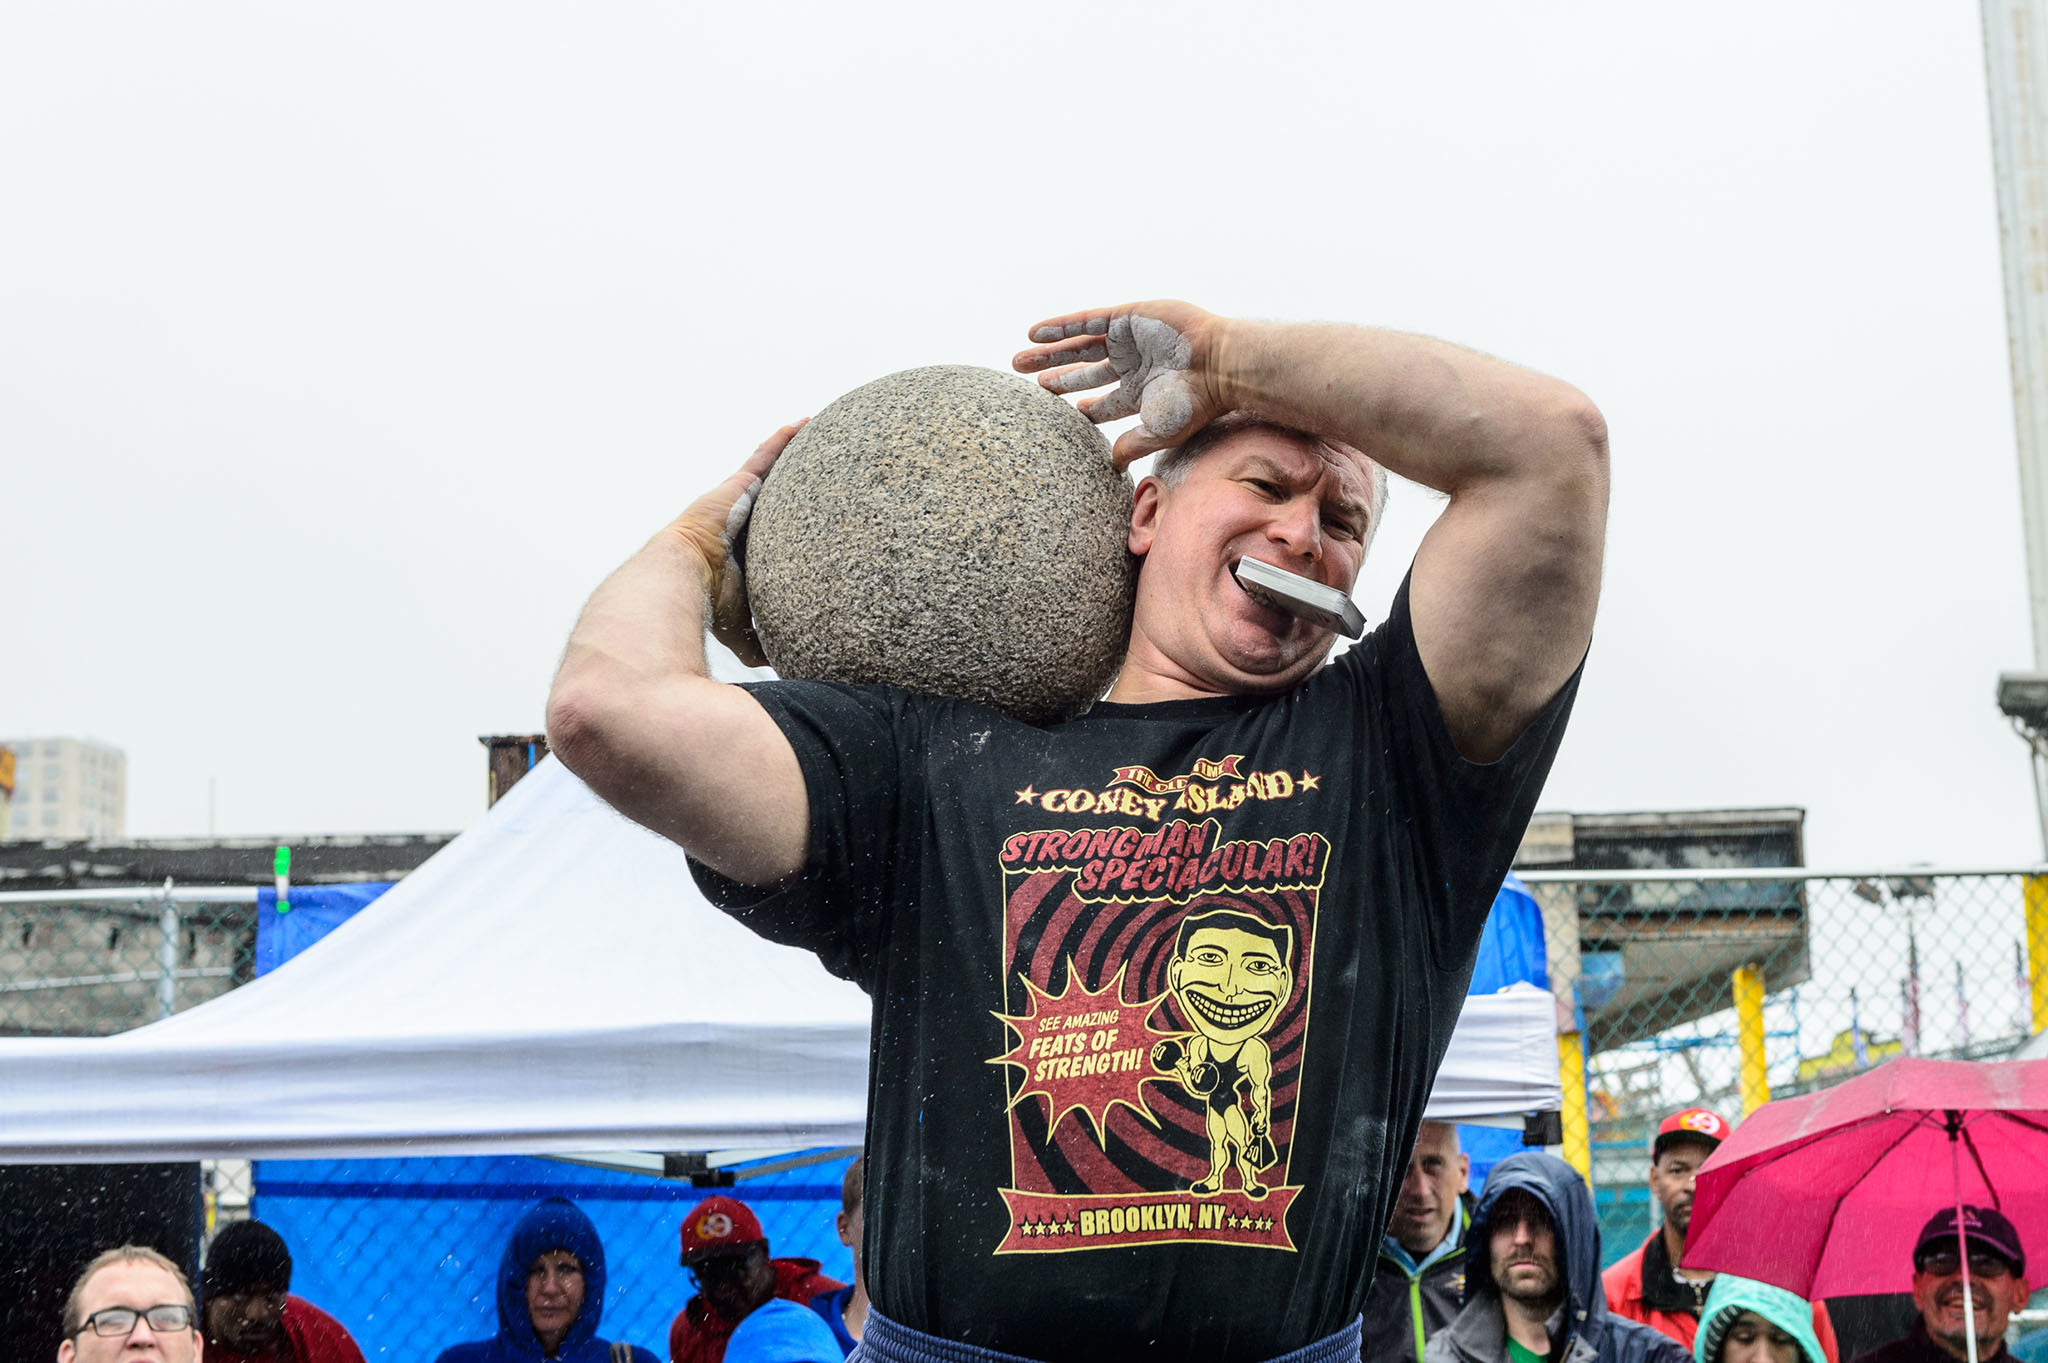 Coney Island Strongman Spectacular 2013